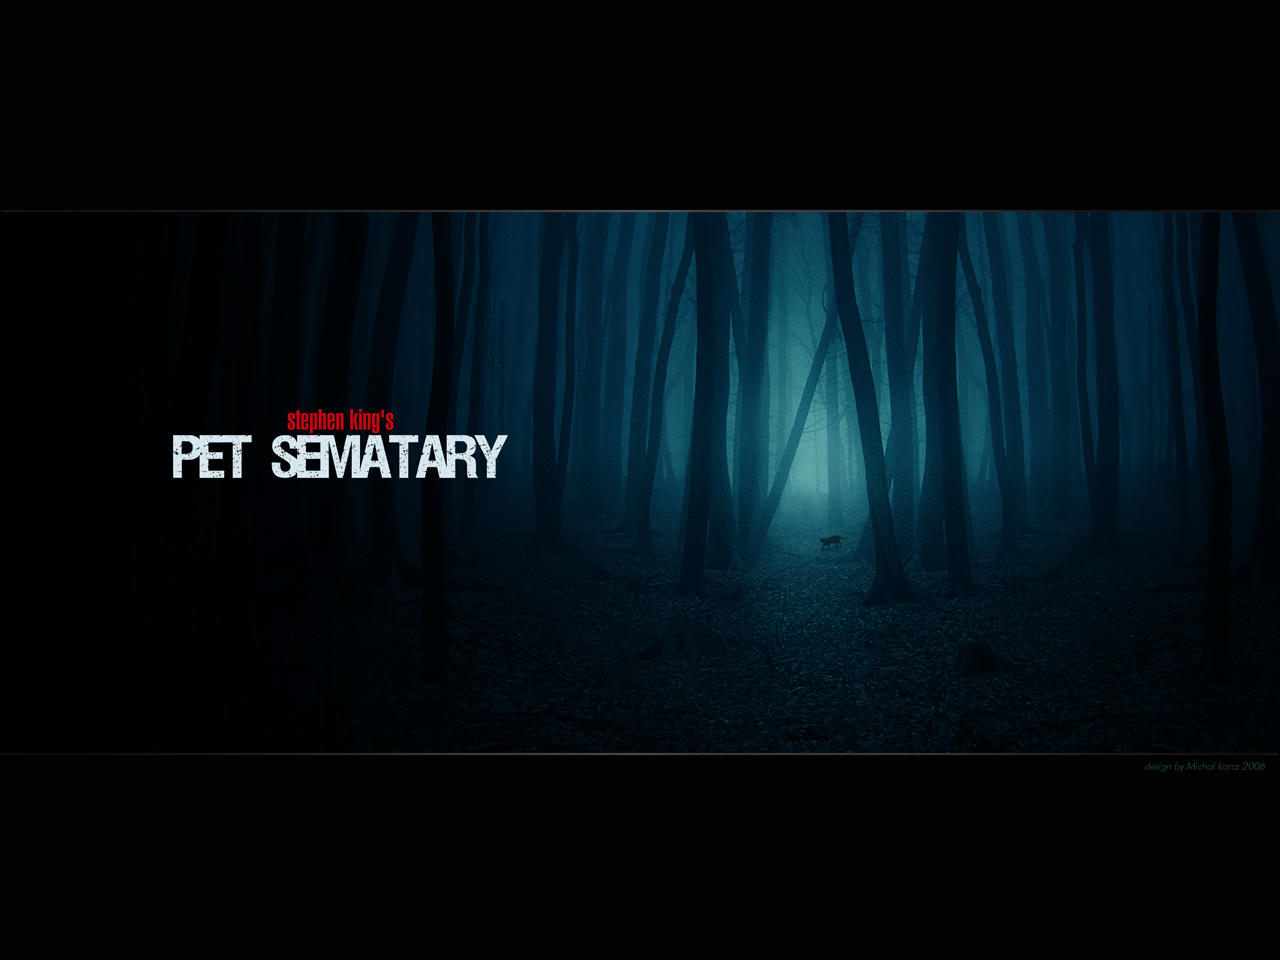 Pet Sematary movies in Bulgaria